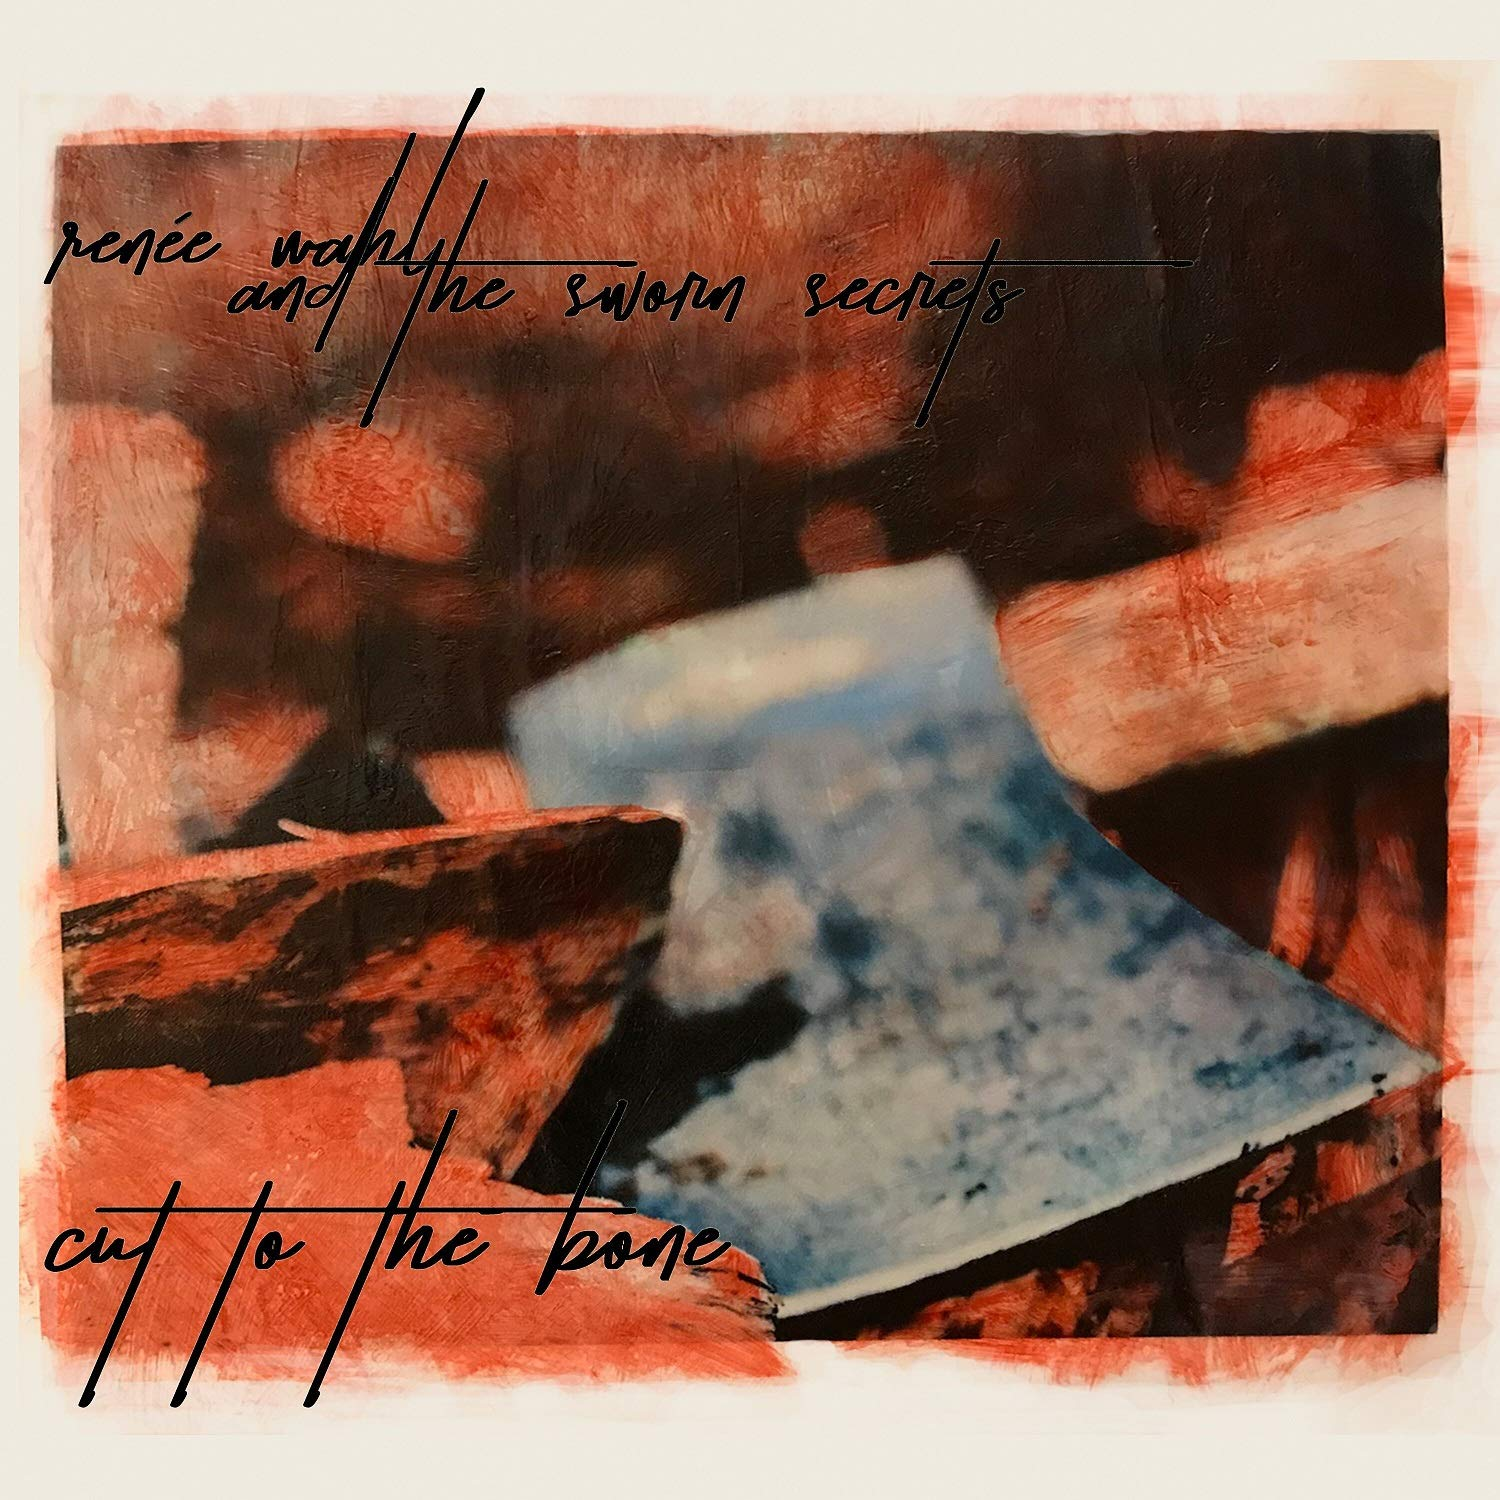 RENEE WAHL – Cut to the Bone (cover art)